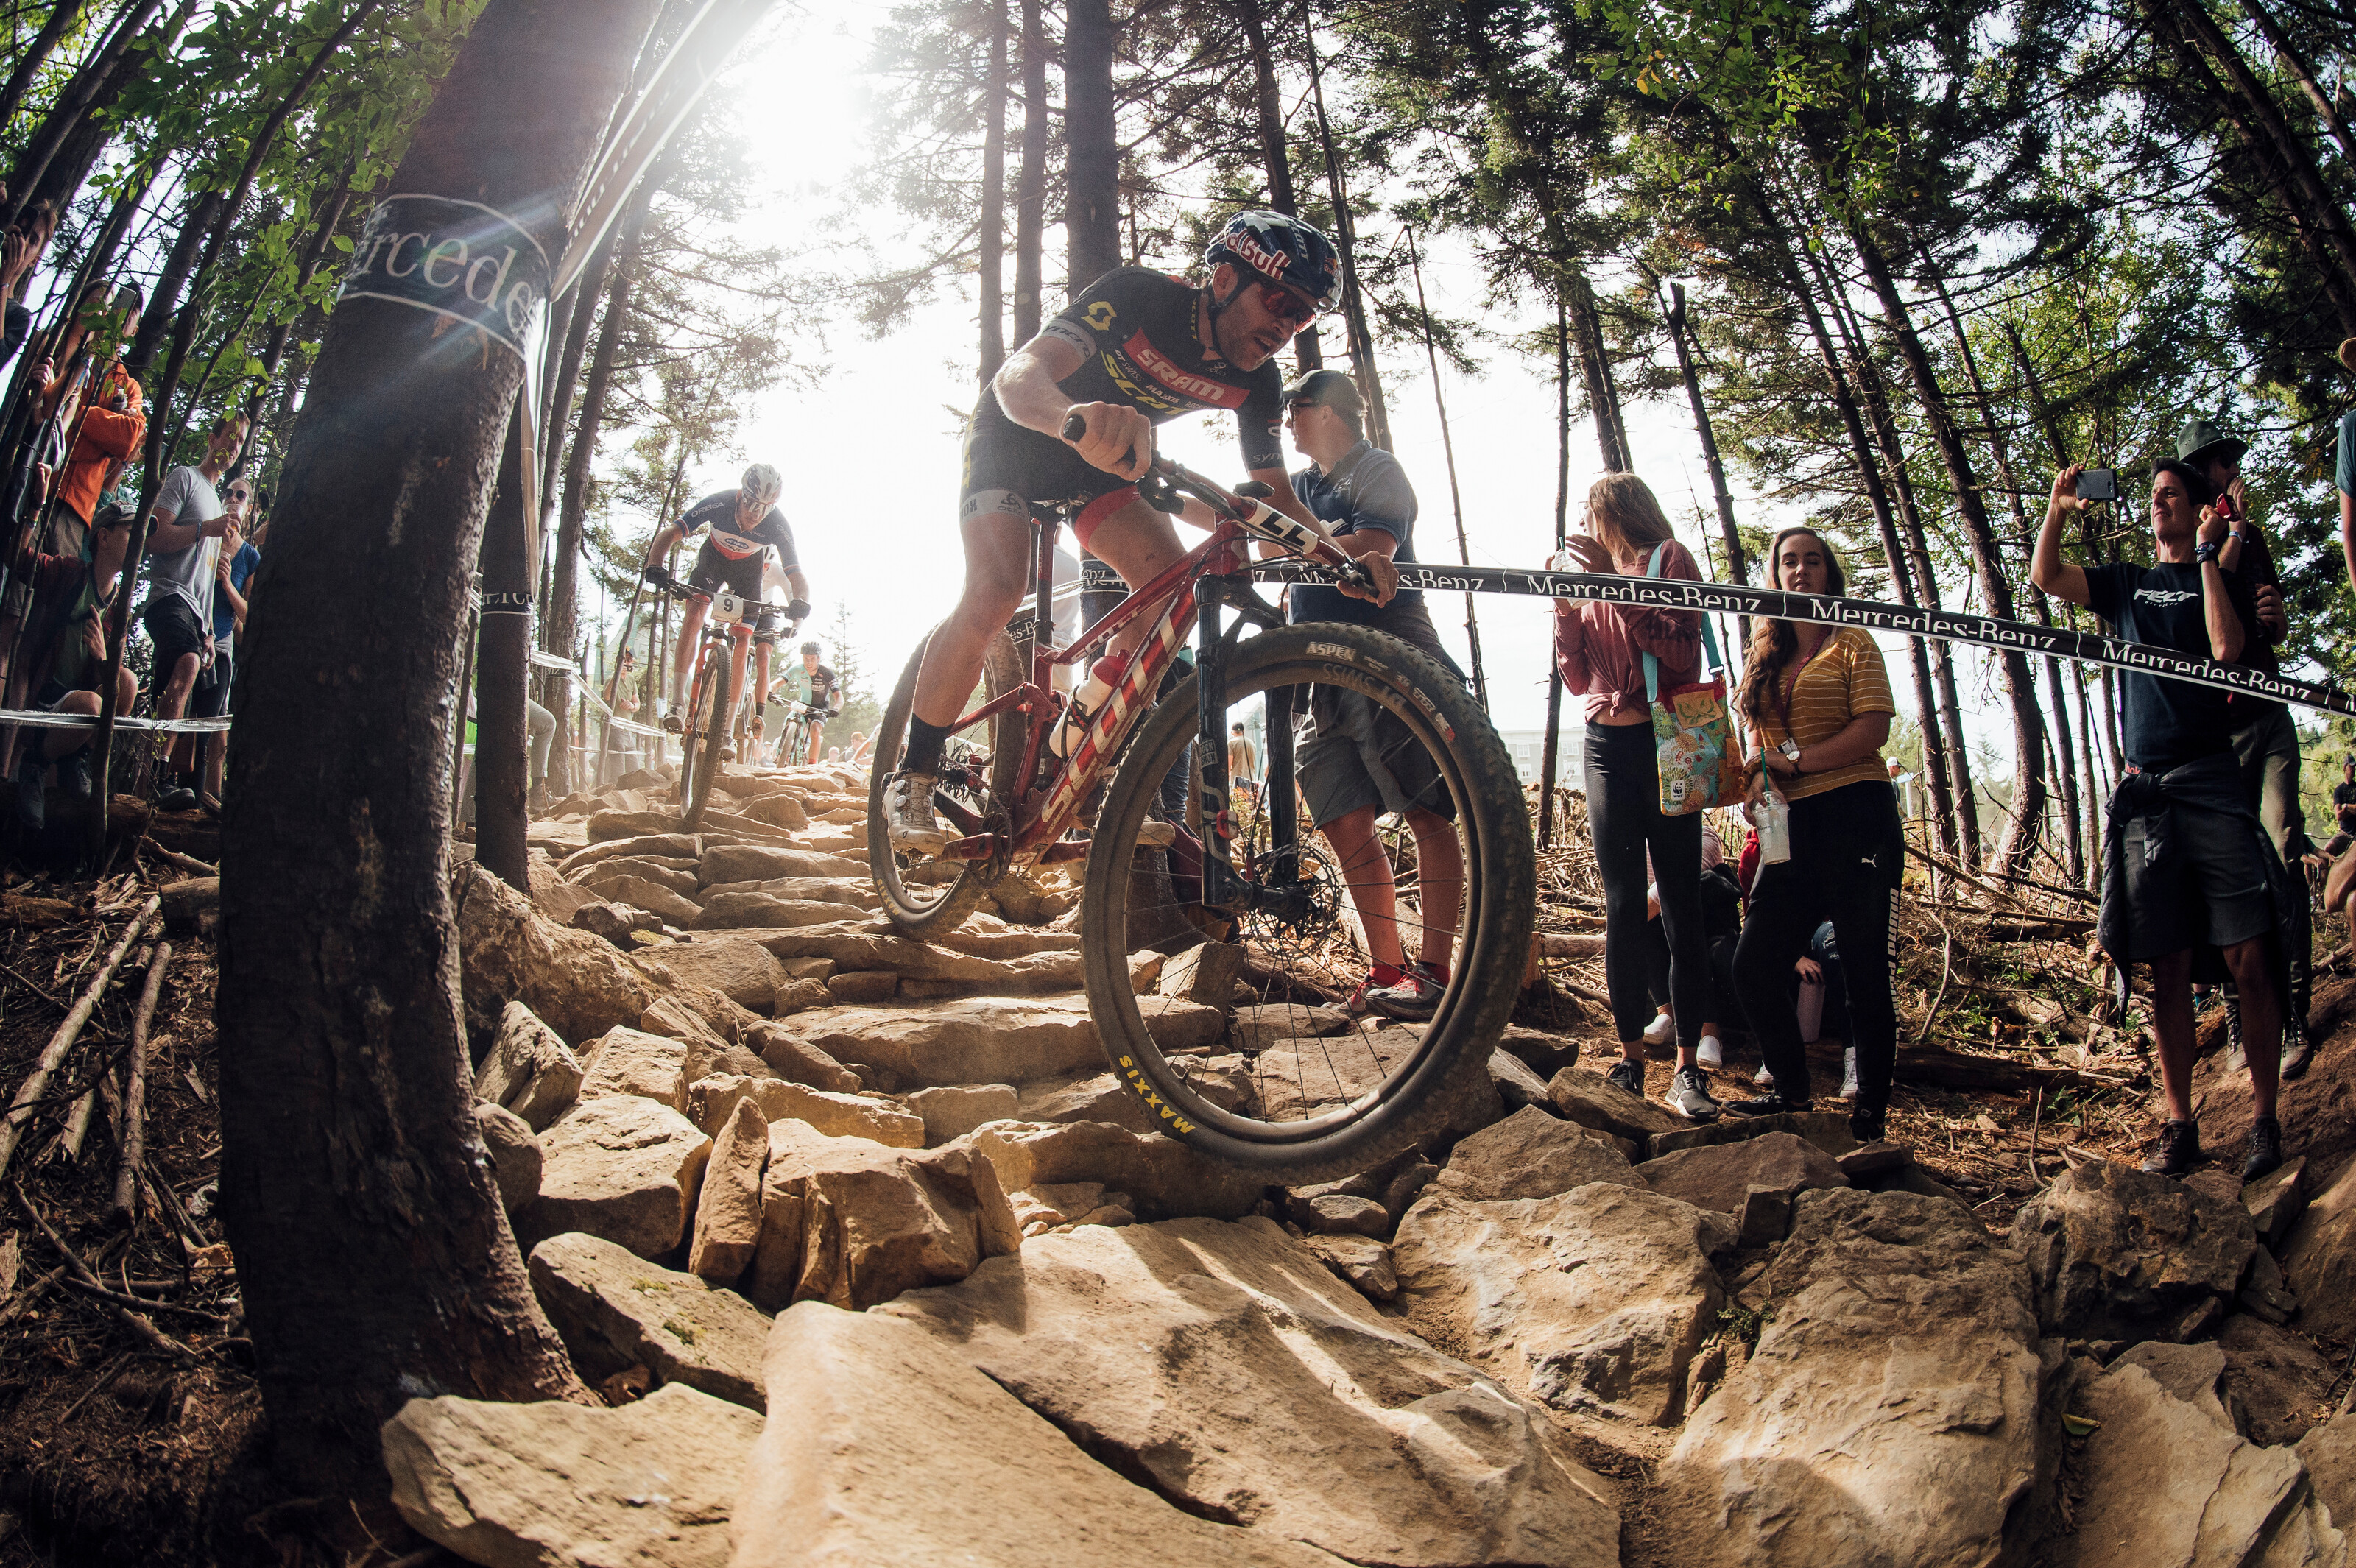 IMBA's Newest Bronze Ride Center Hosts the First US World Cup MTB Stop in a While - Singletracks Mountain Bike News